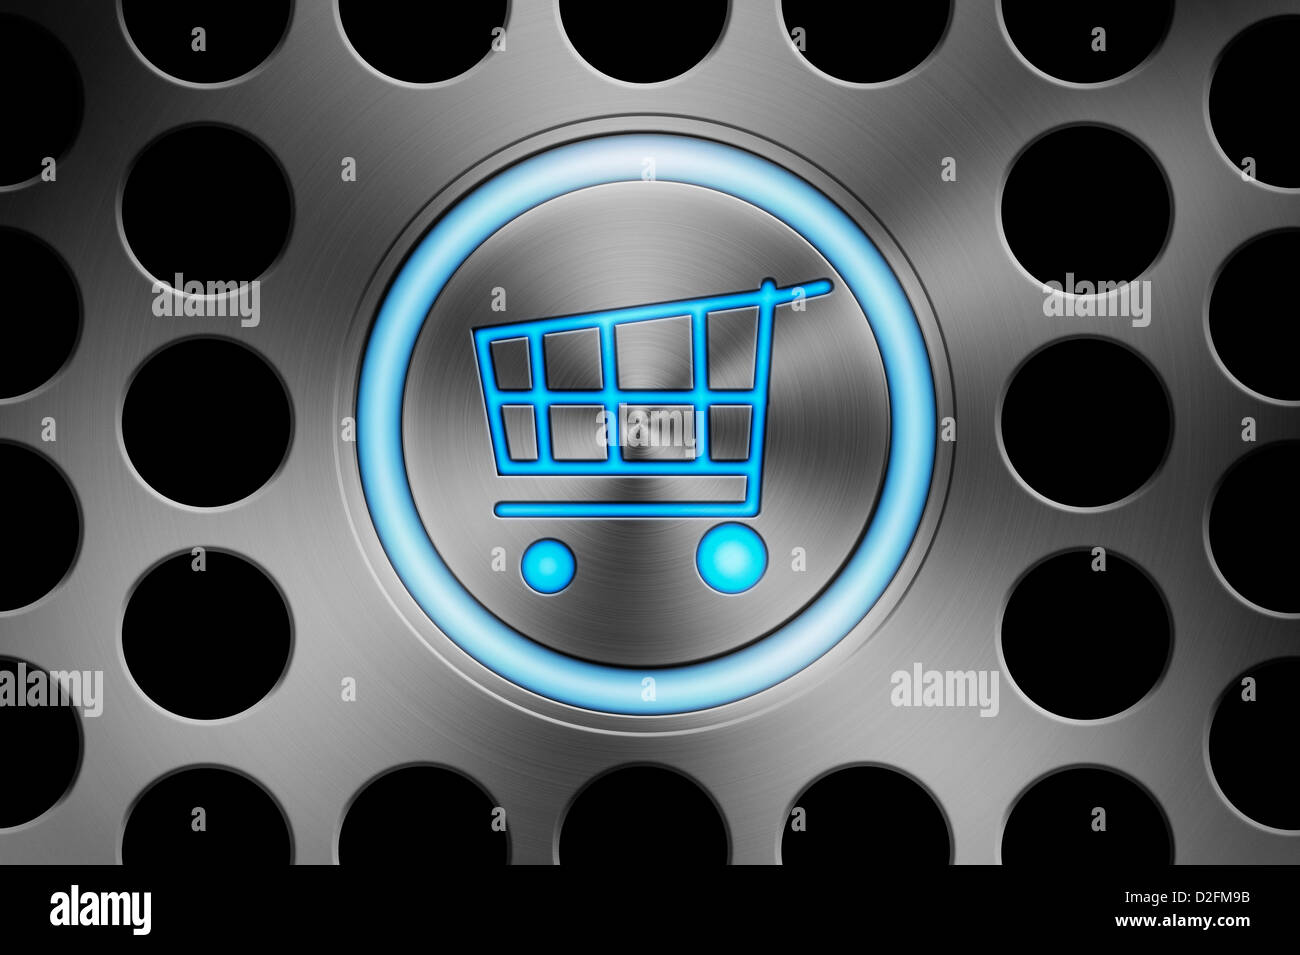 Online shopping technology concept - Stock Image